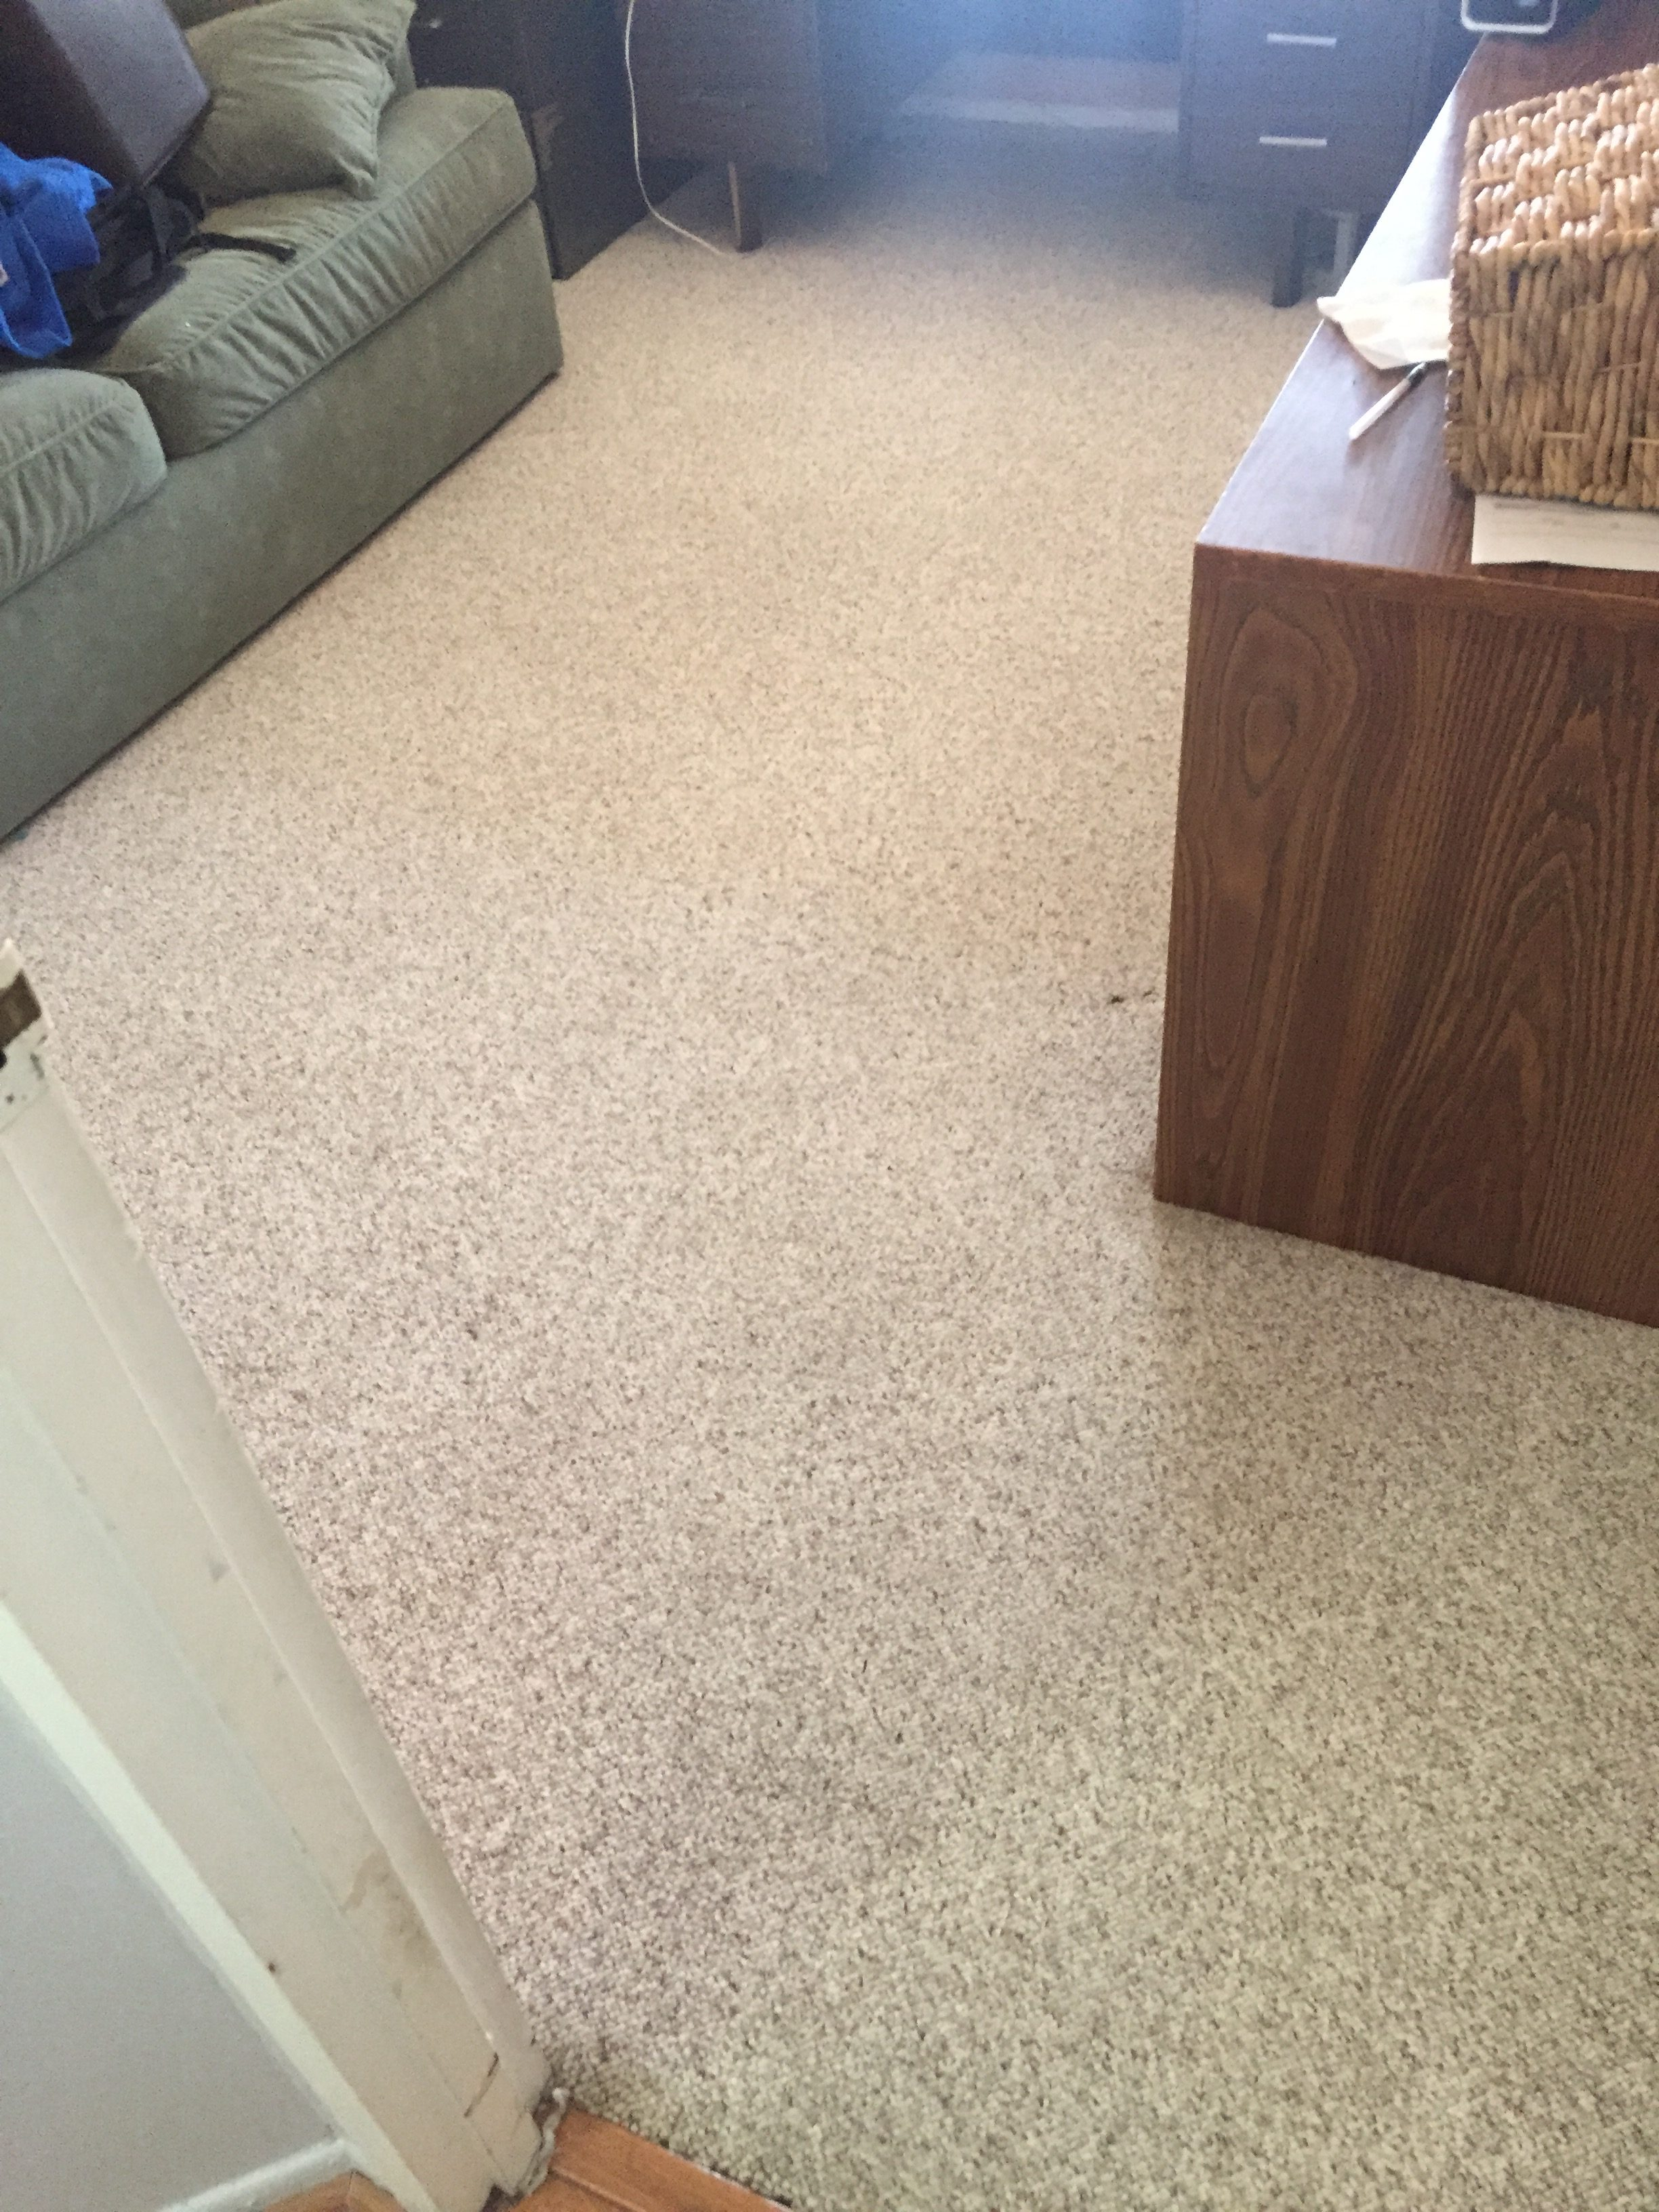 Carpet Cleaning – After